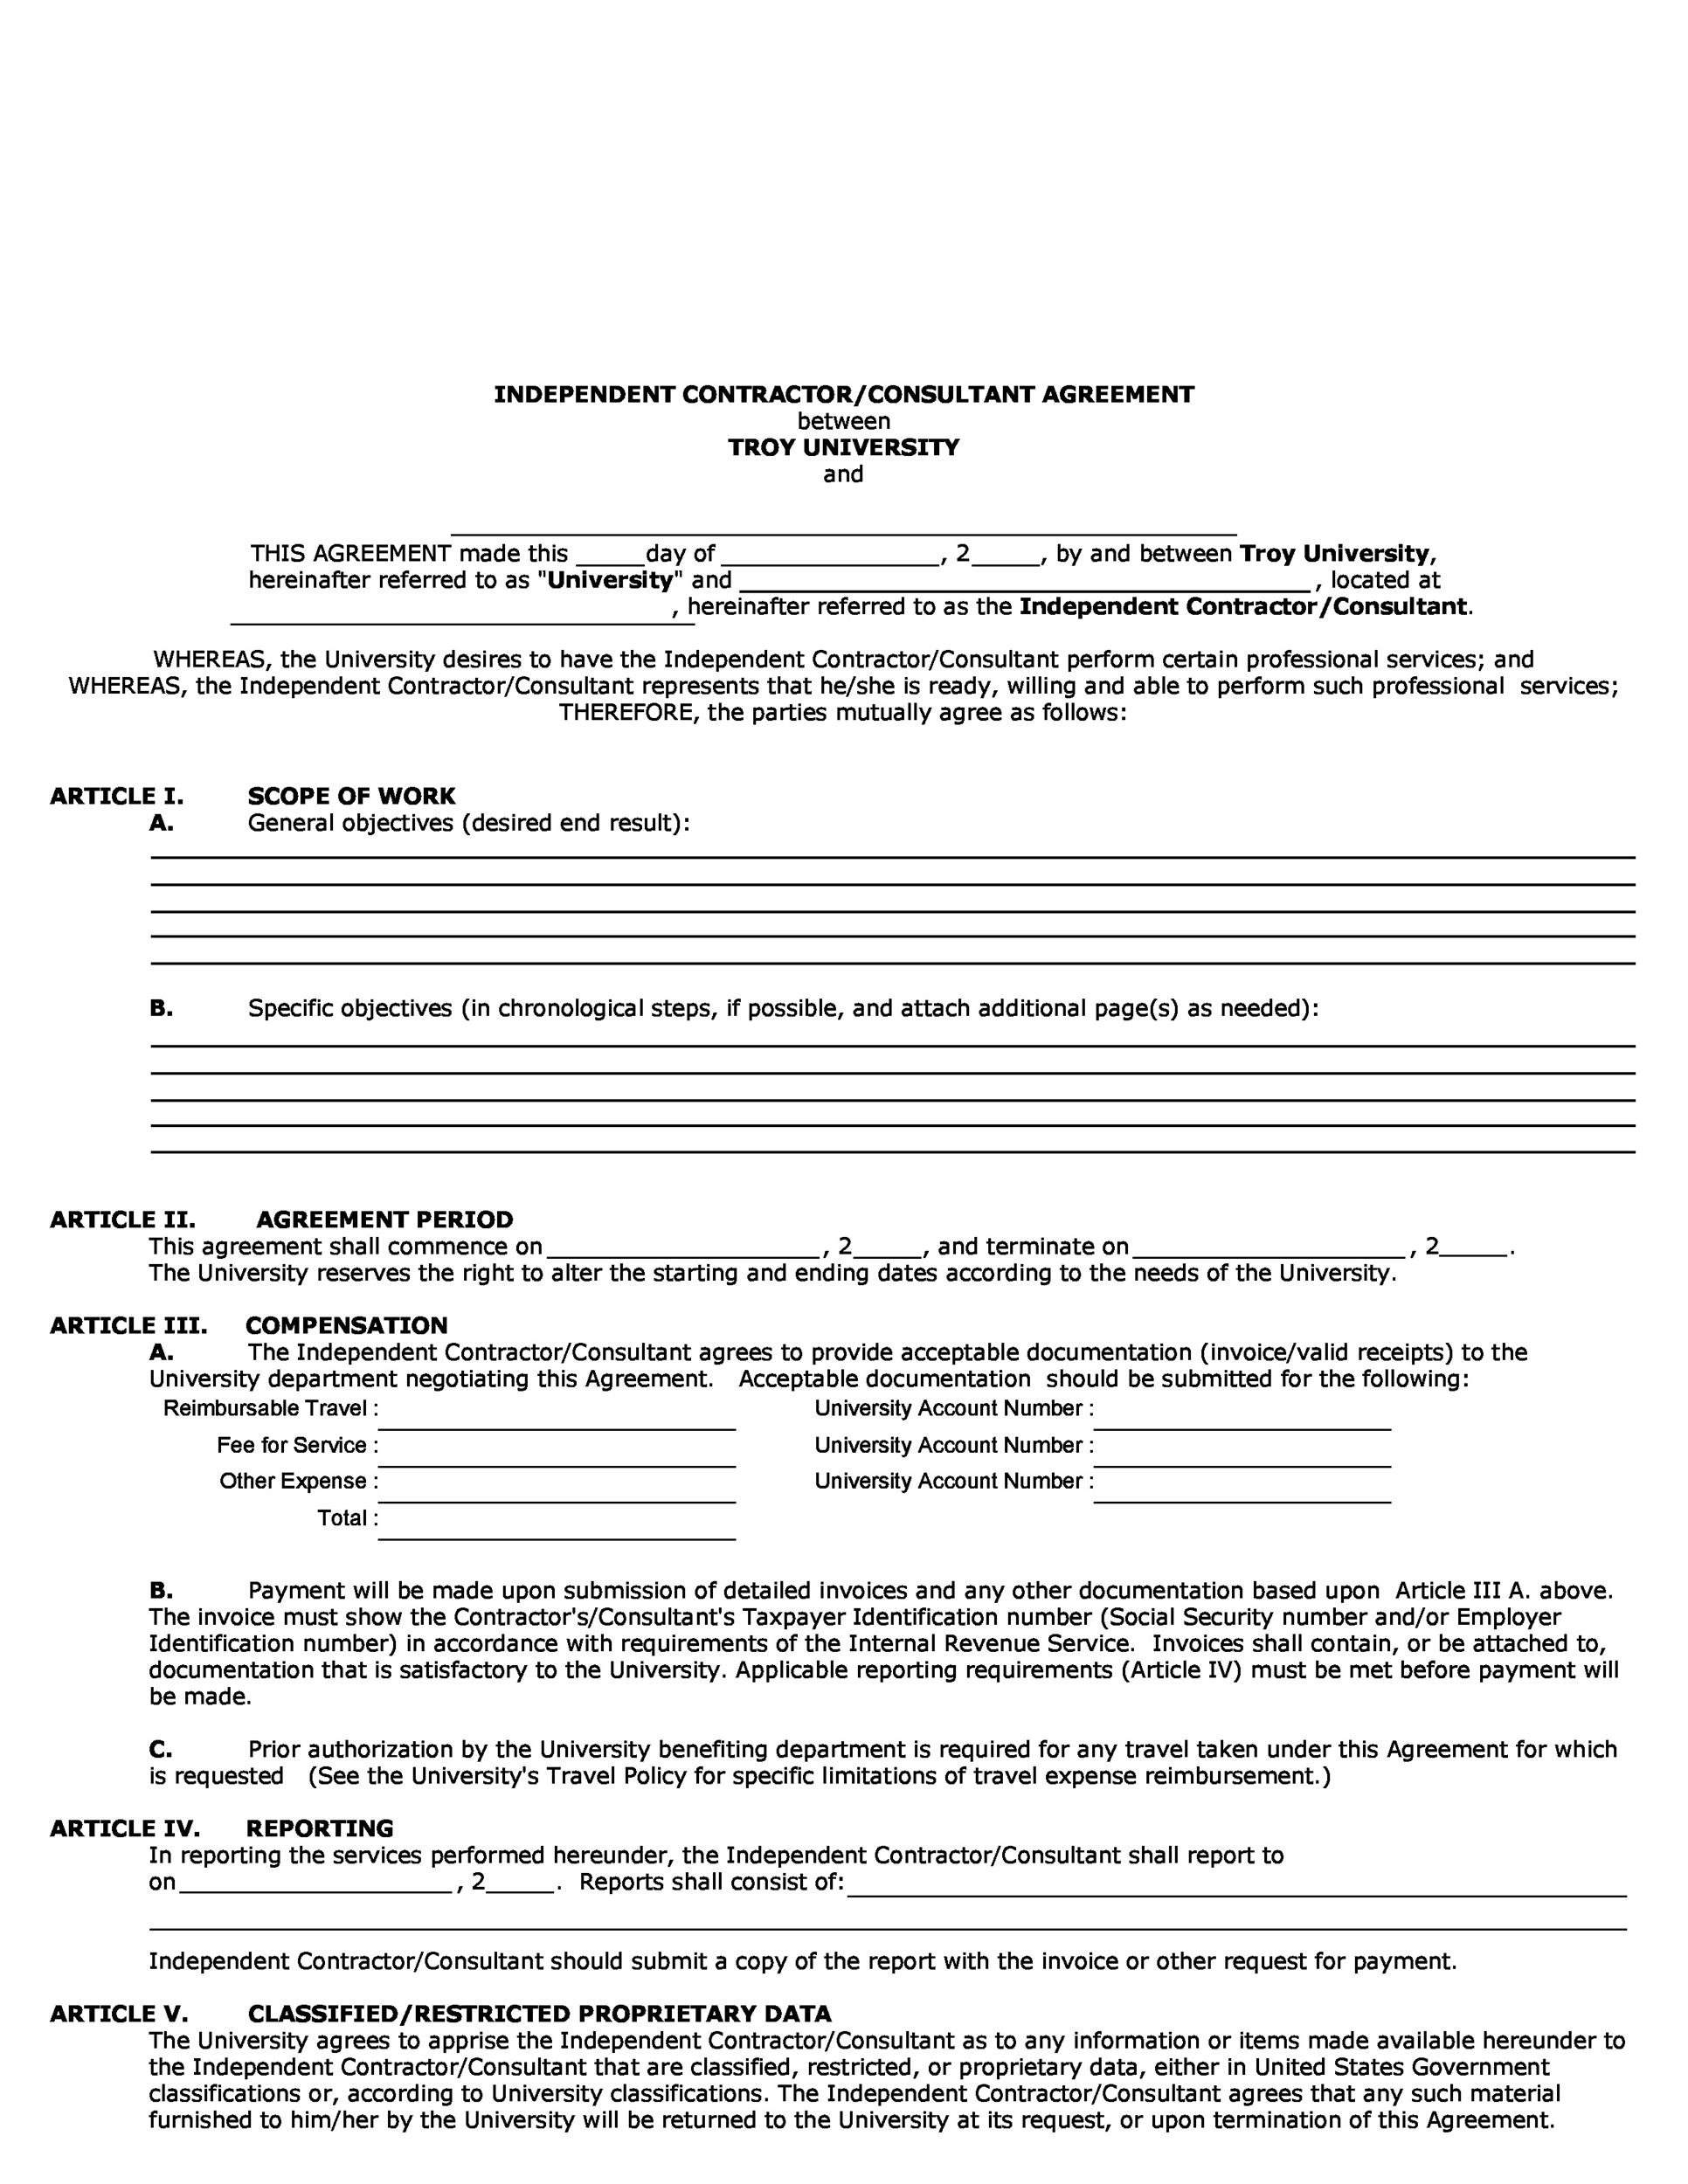 Free independent contractor agreement 42